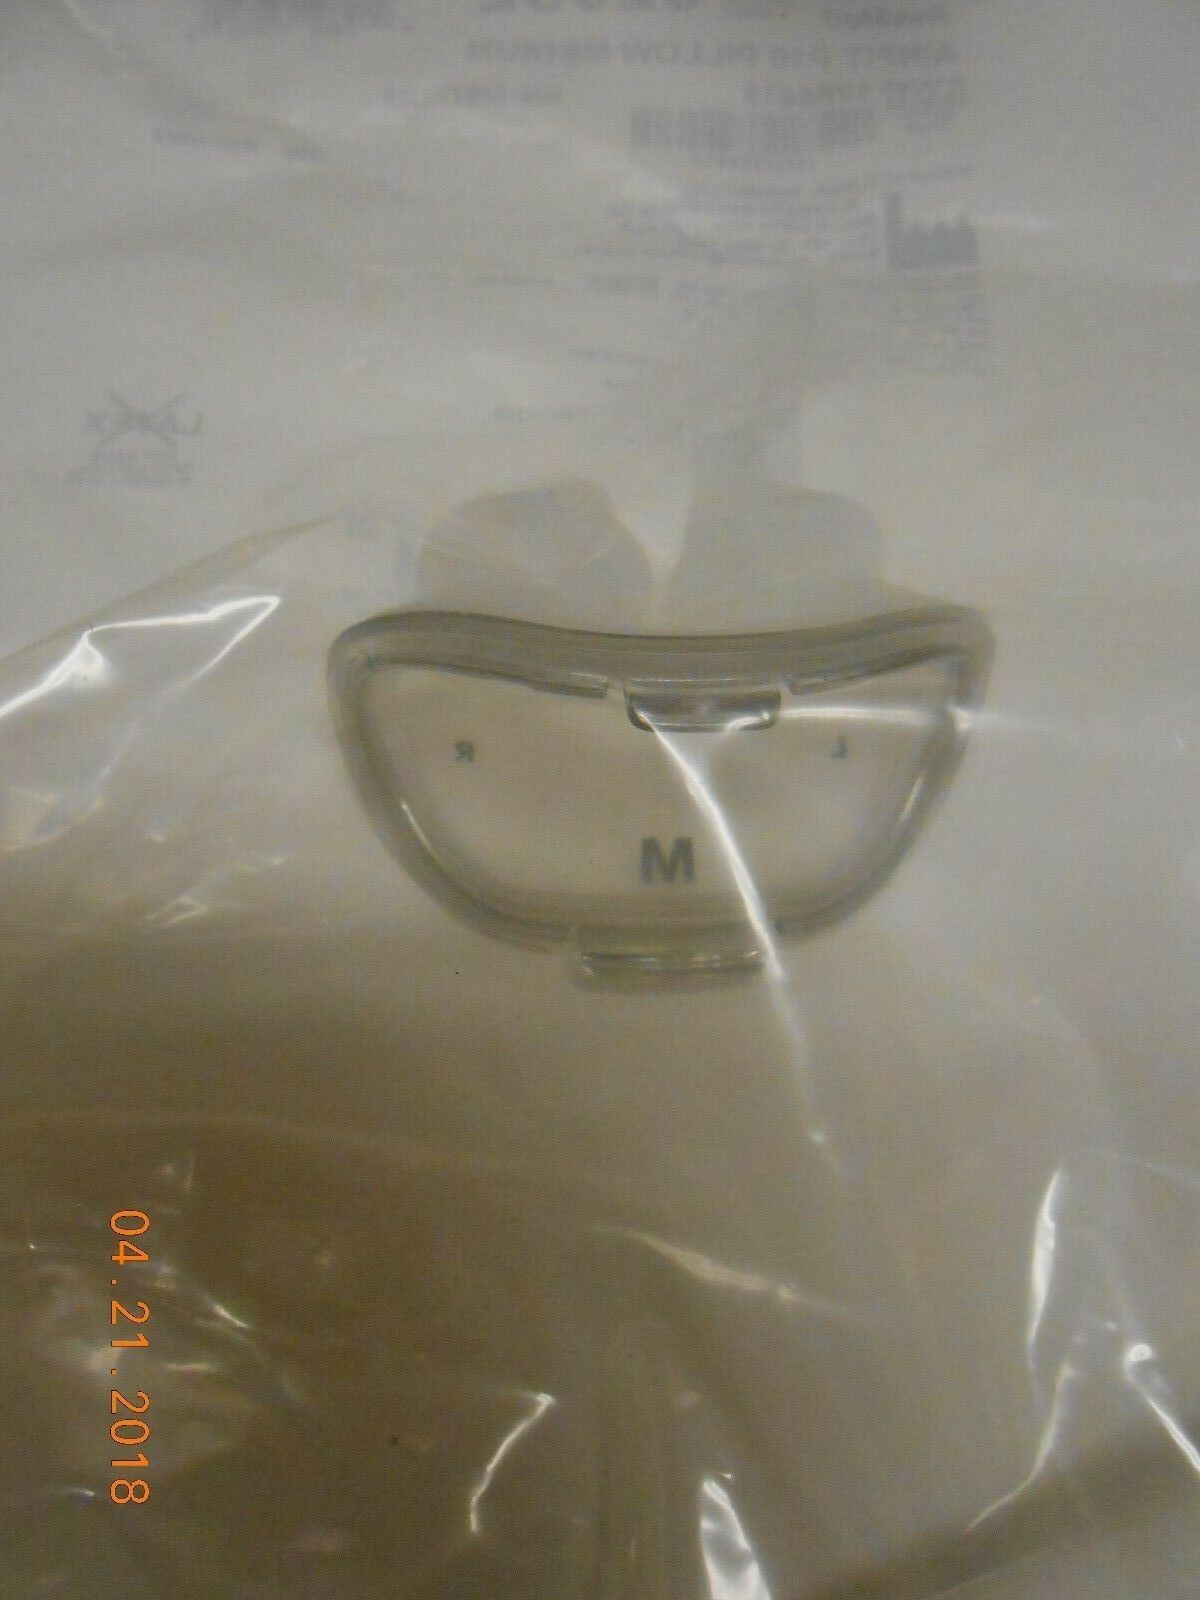 Sealed ResMed airfit P10 medium size pillow 62932 Cpap supplies No RX needed NEW - $15.83